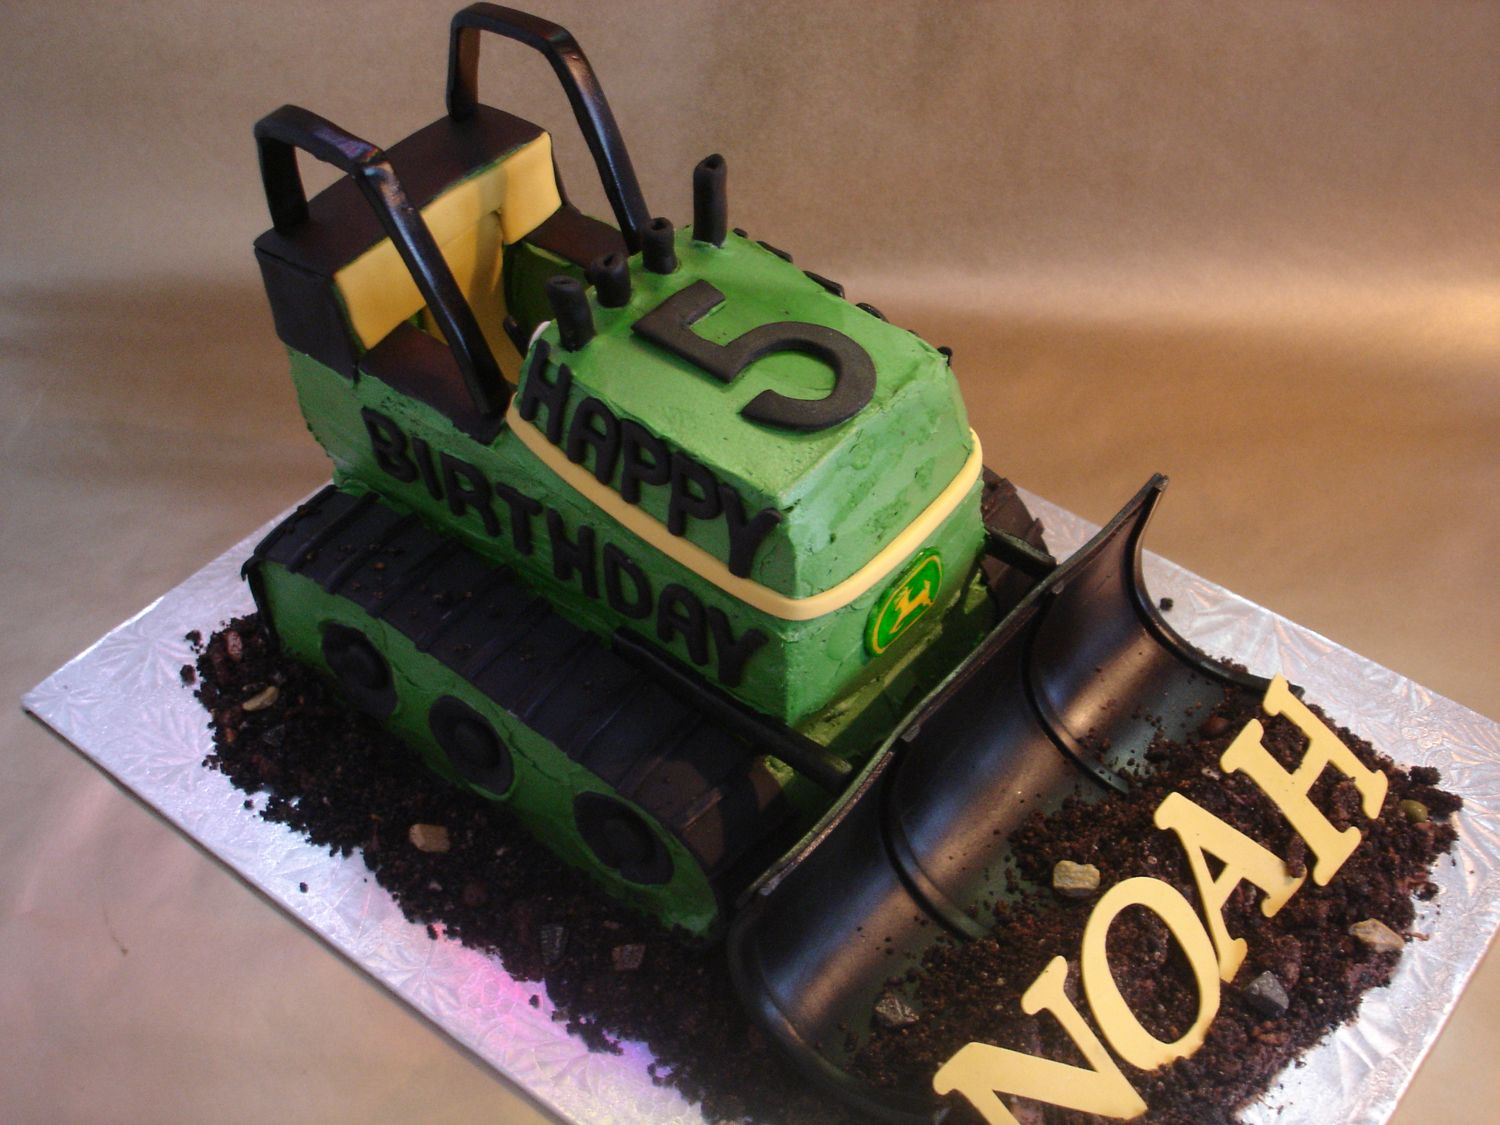 Bulldozer Cakefor More Fun Join Us On Facebook Httpsfacebook